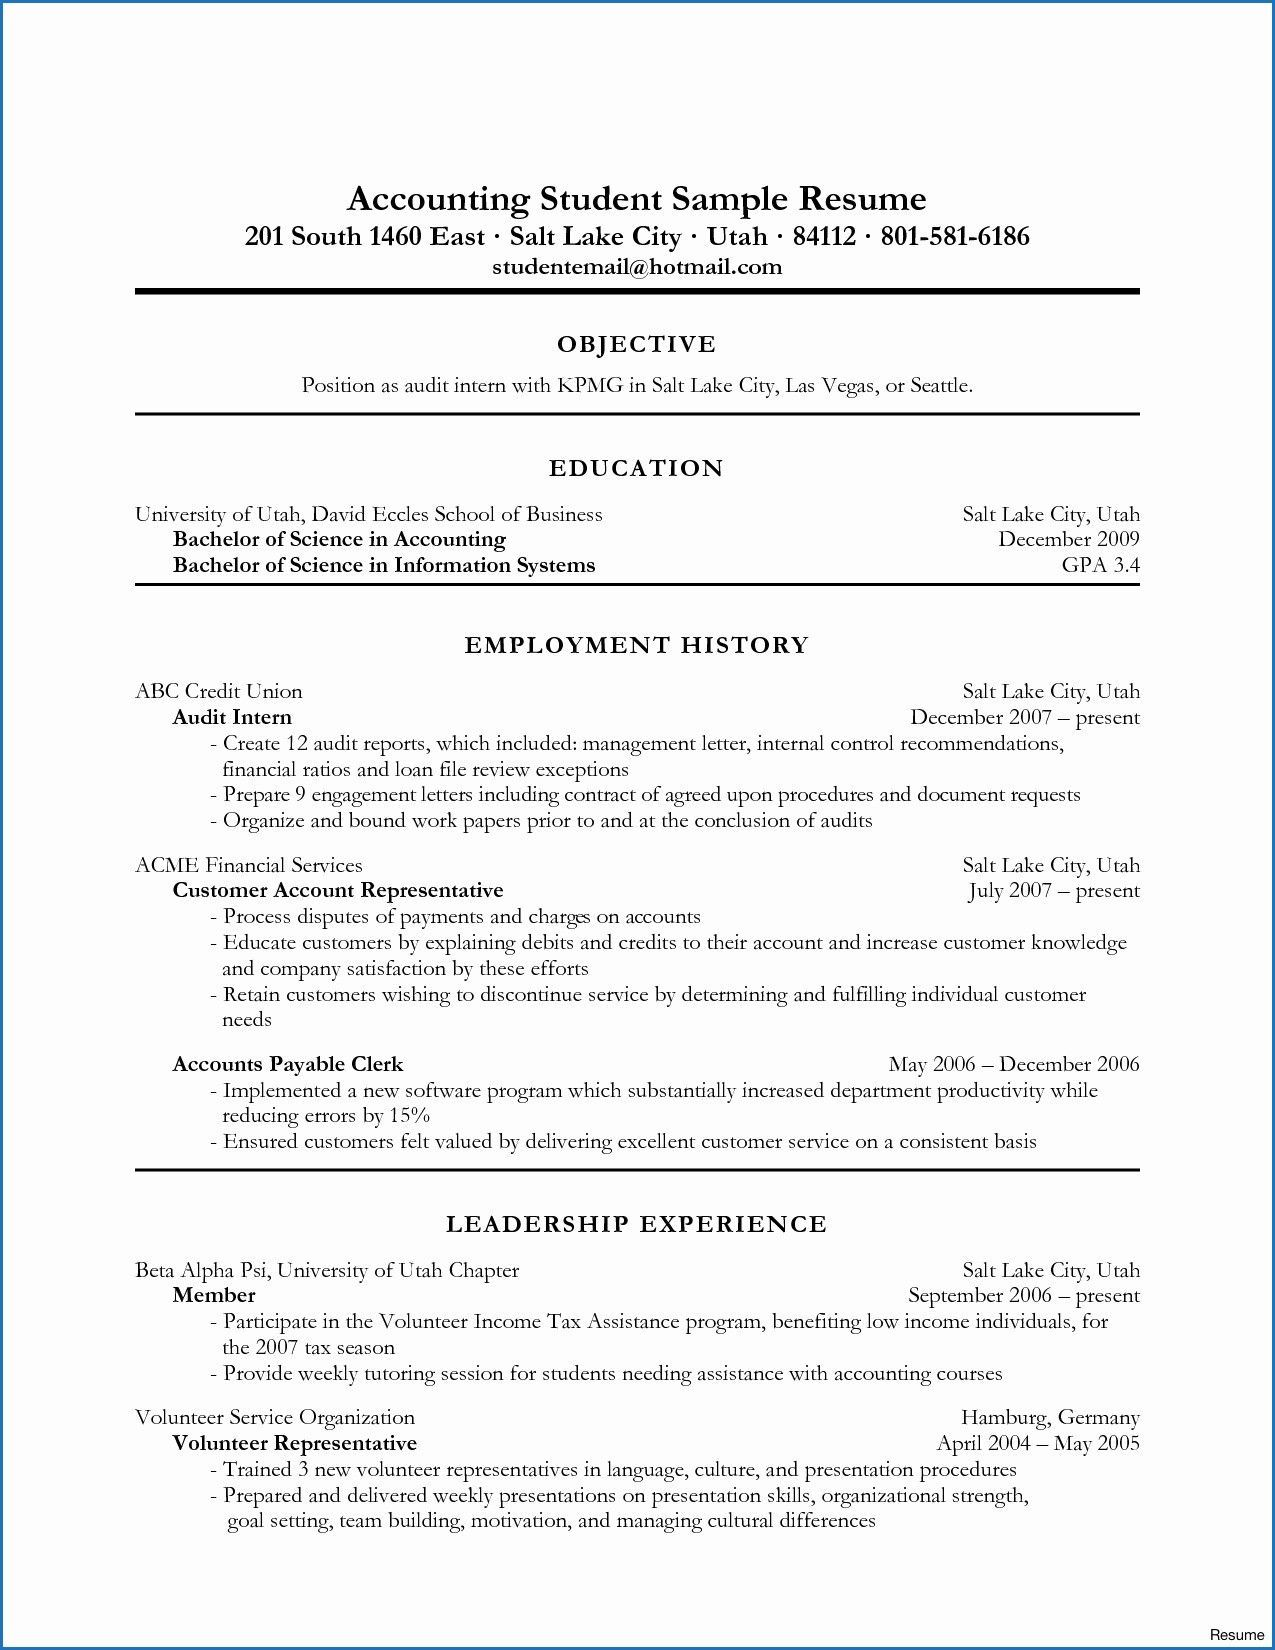 How To Write Resume Objective For Internship What Is A Resume Objective